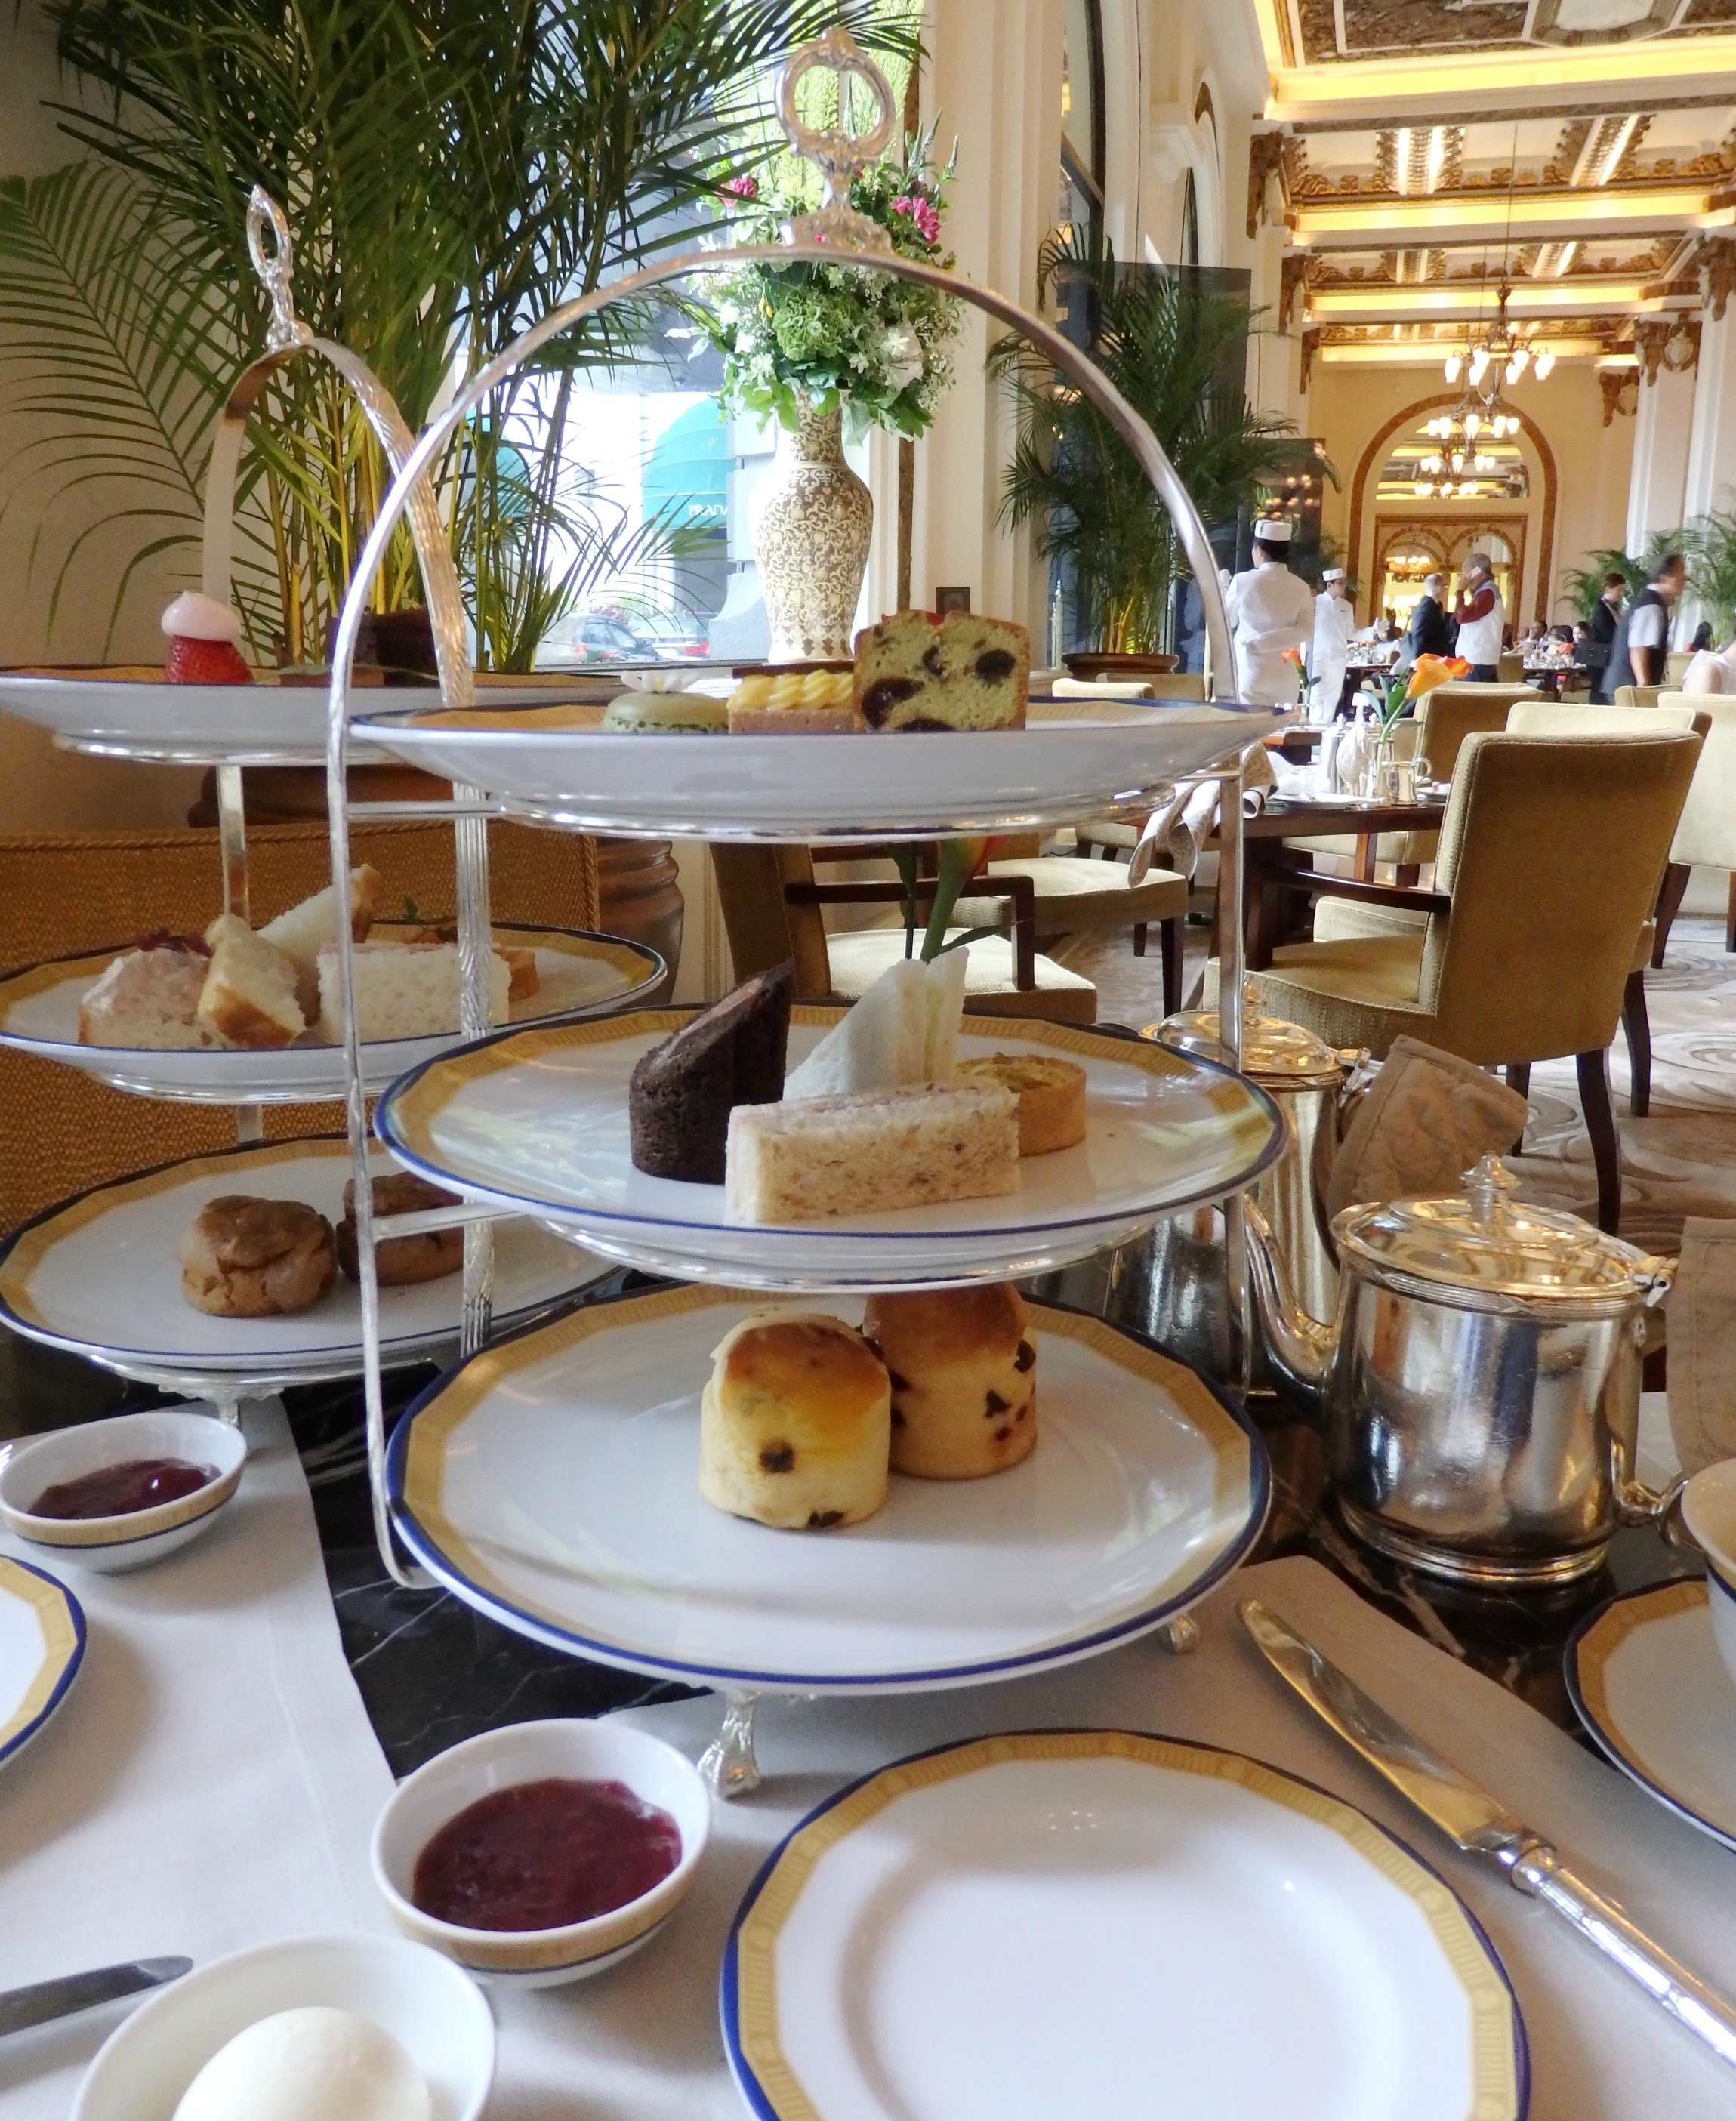 Enjoyable Peninsula Hotel Hong Kong Afternoon Tea Download Free Architecture Designs Terchretrmadebymaigaardcom